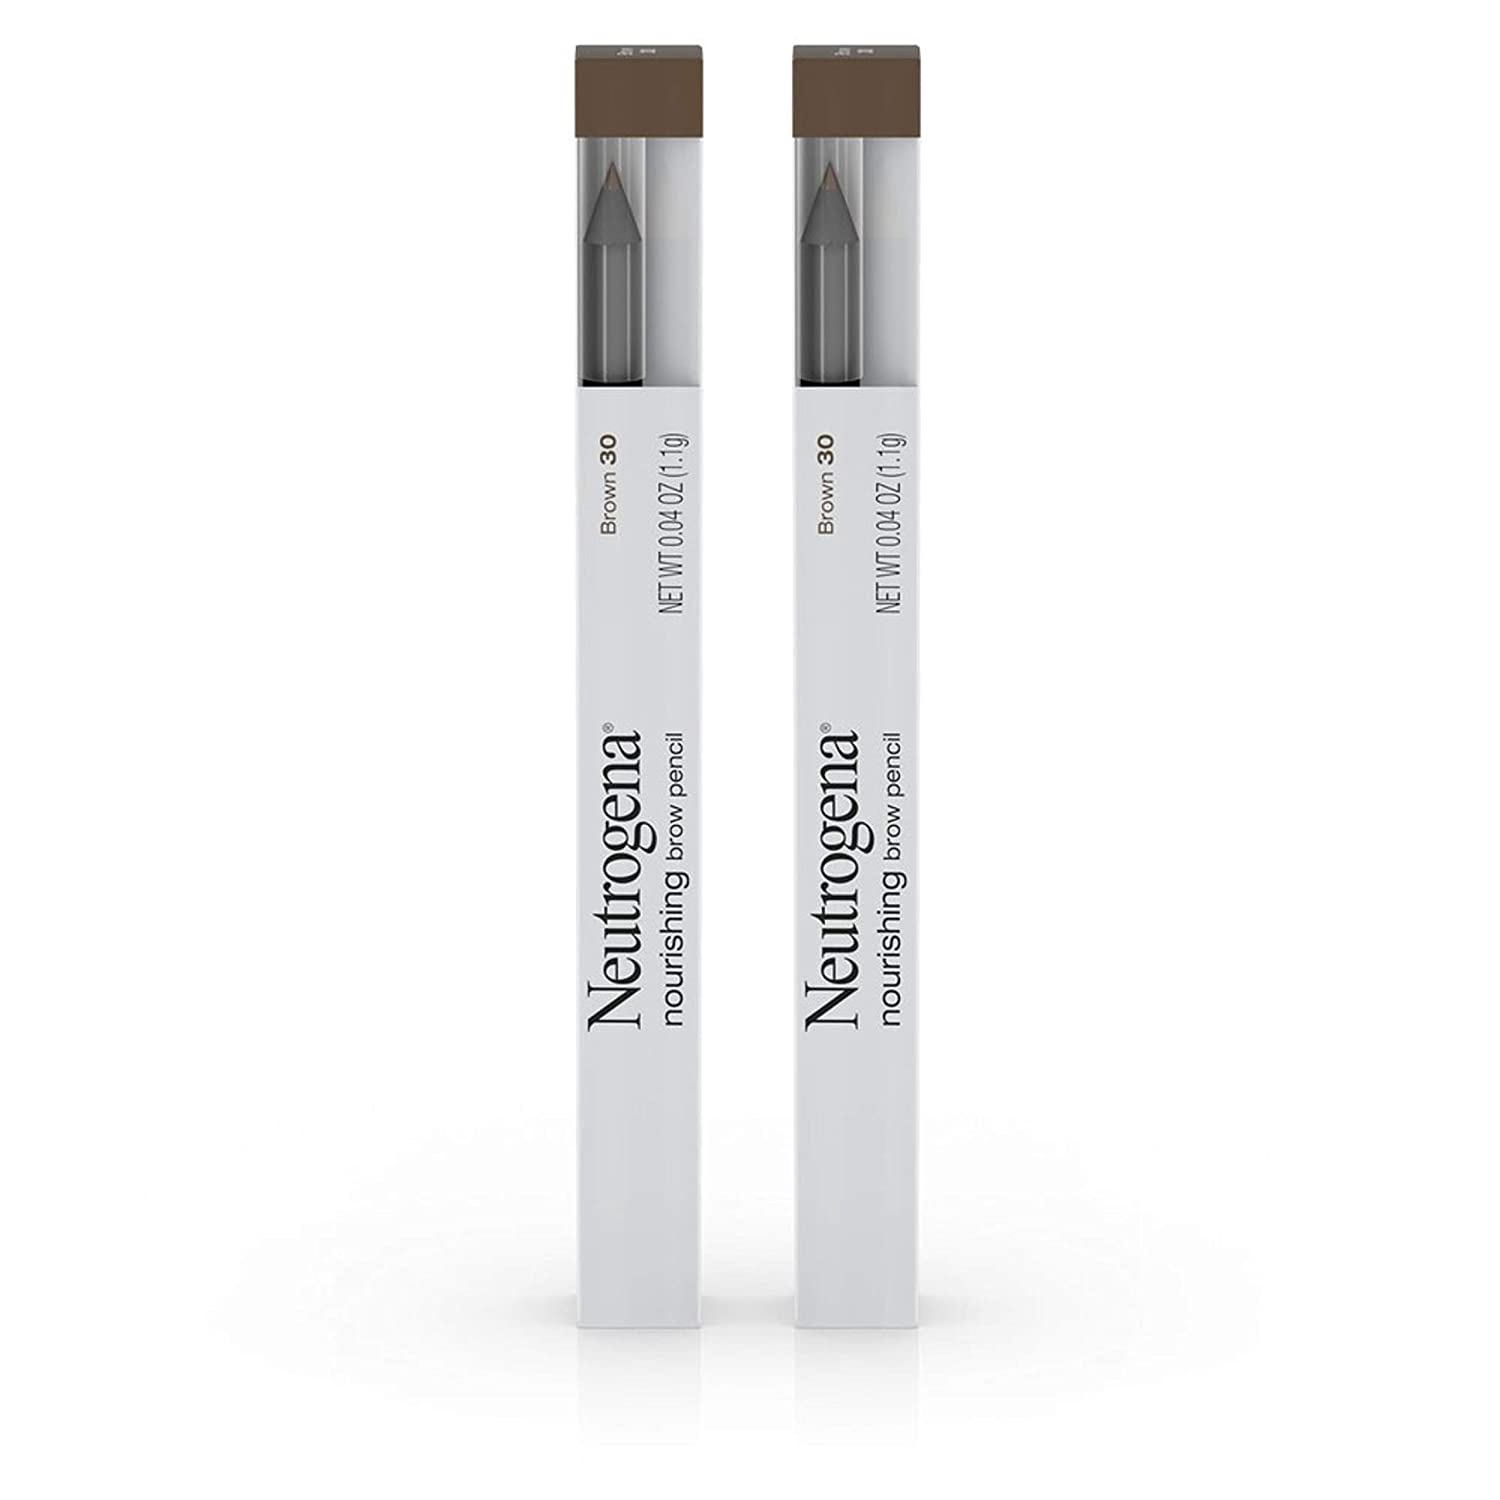 Neutrogena Nourishing Eyebrow Pencil with Spoolie Brush, 2-in-1 Eyebrow Filler In Shade Brown 30, .04 oz (Pack of 2)